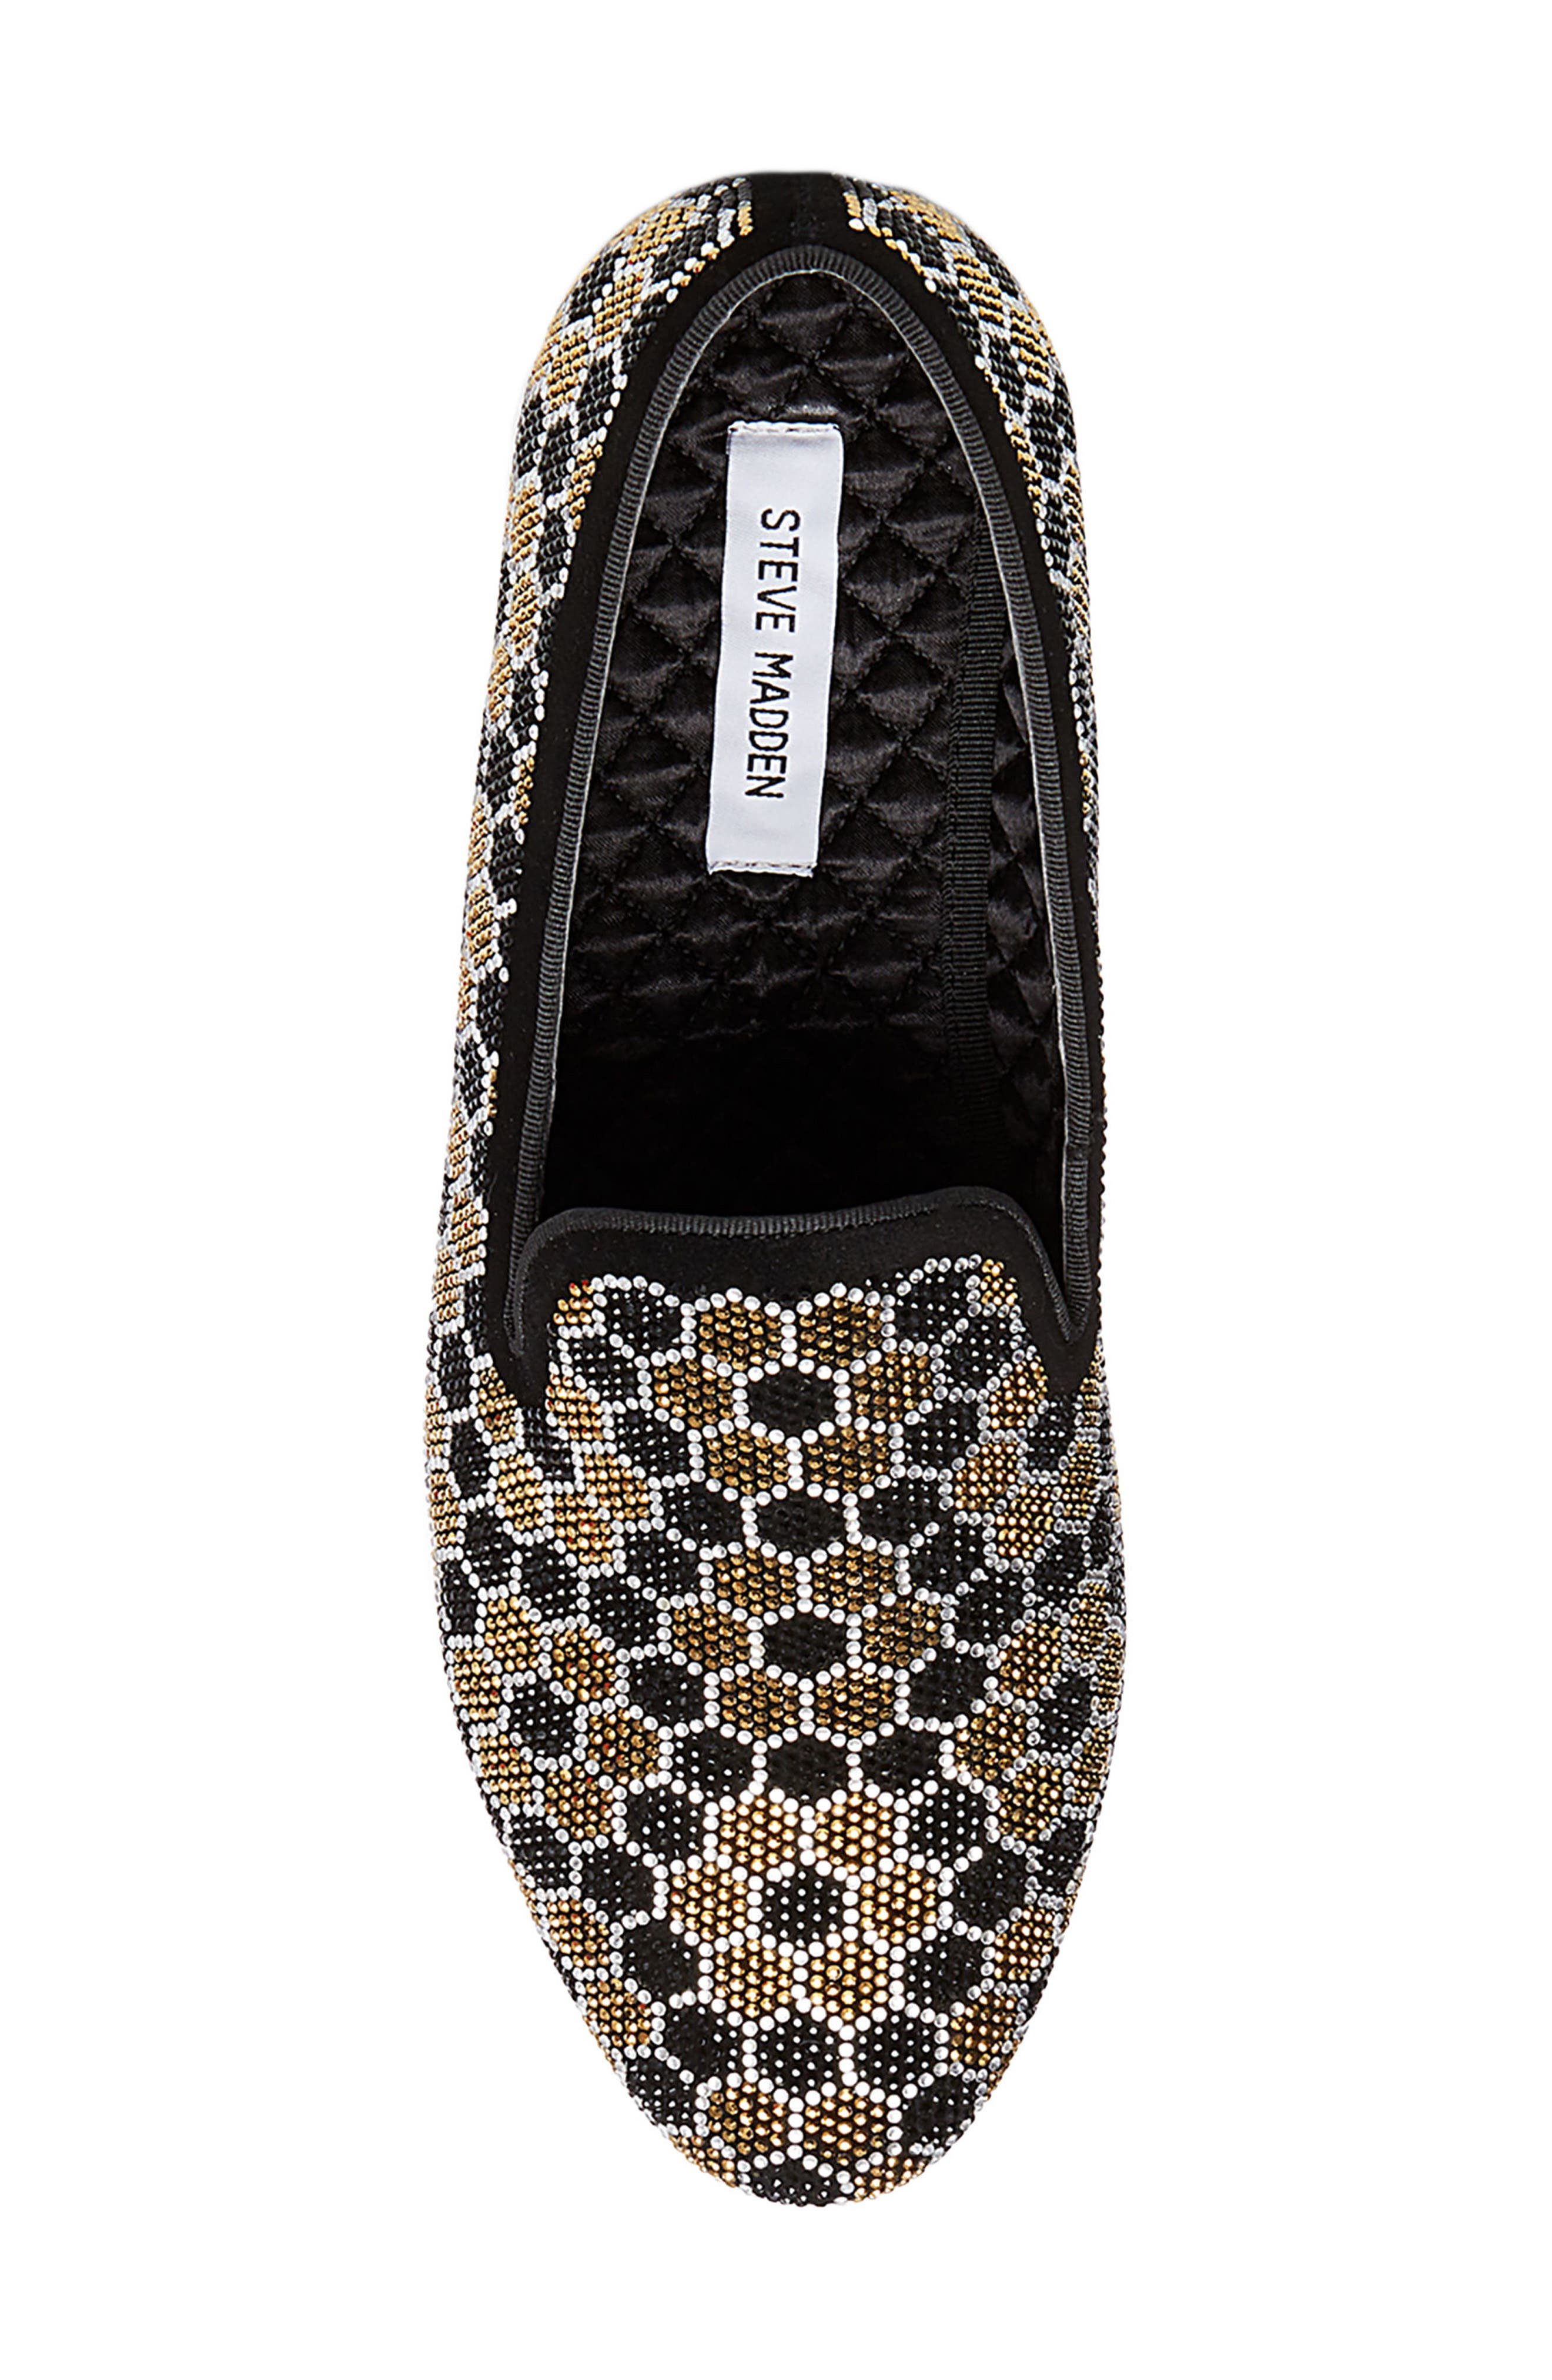 Caspian Studded Venetian Loafer,                             Alternate thumbnail 5, color,                             Black/ Gold